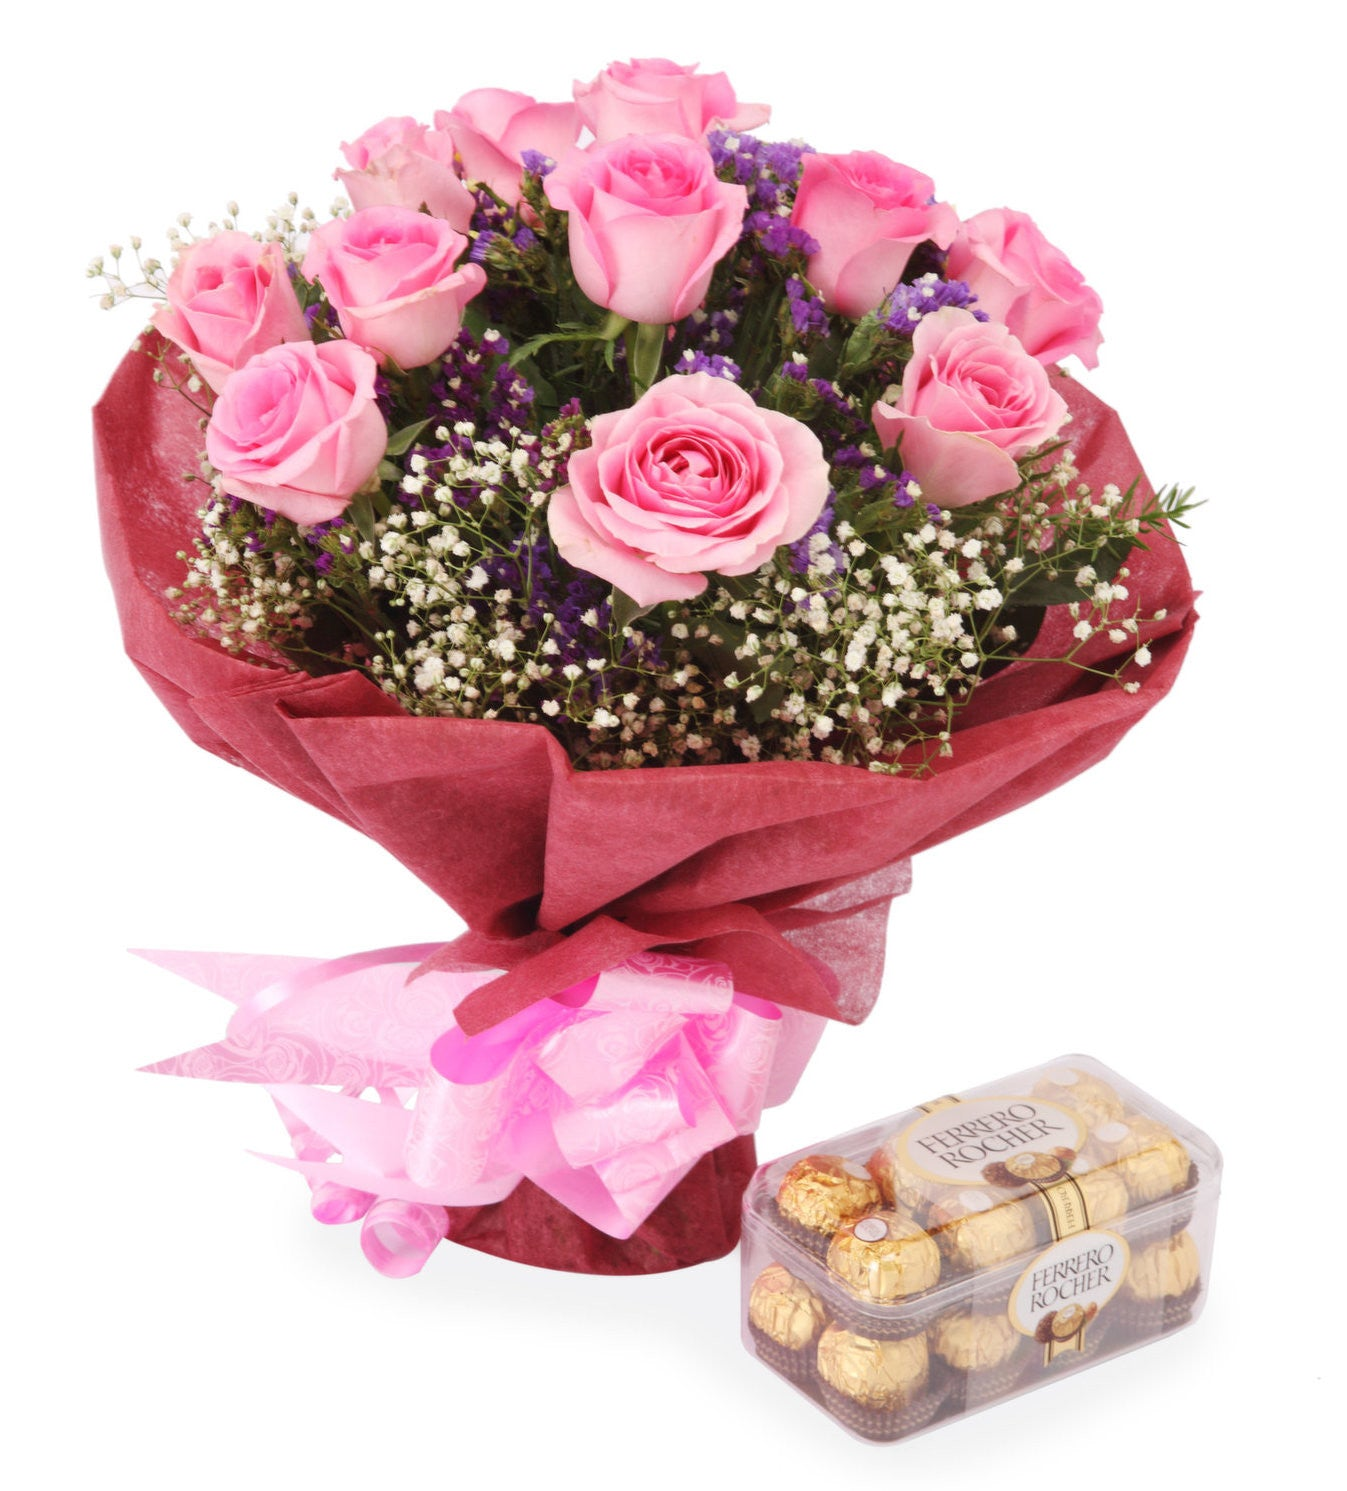 Roses & Ferrero Rocher Chocolates delivery near me